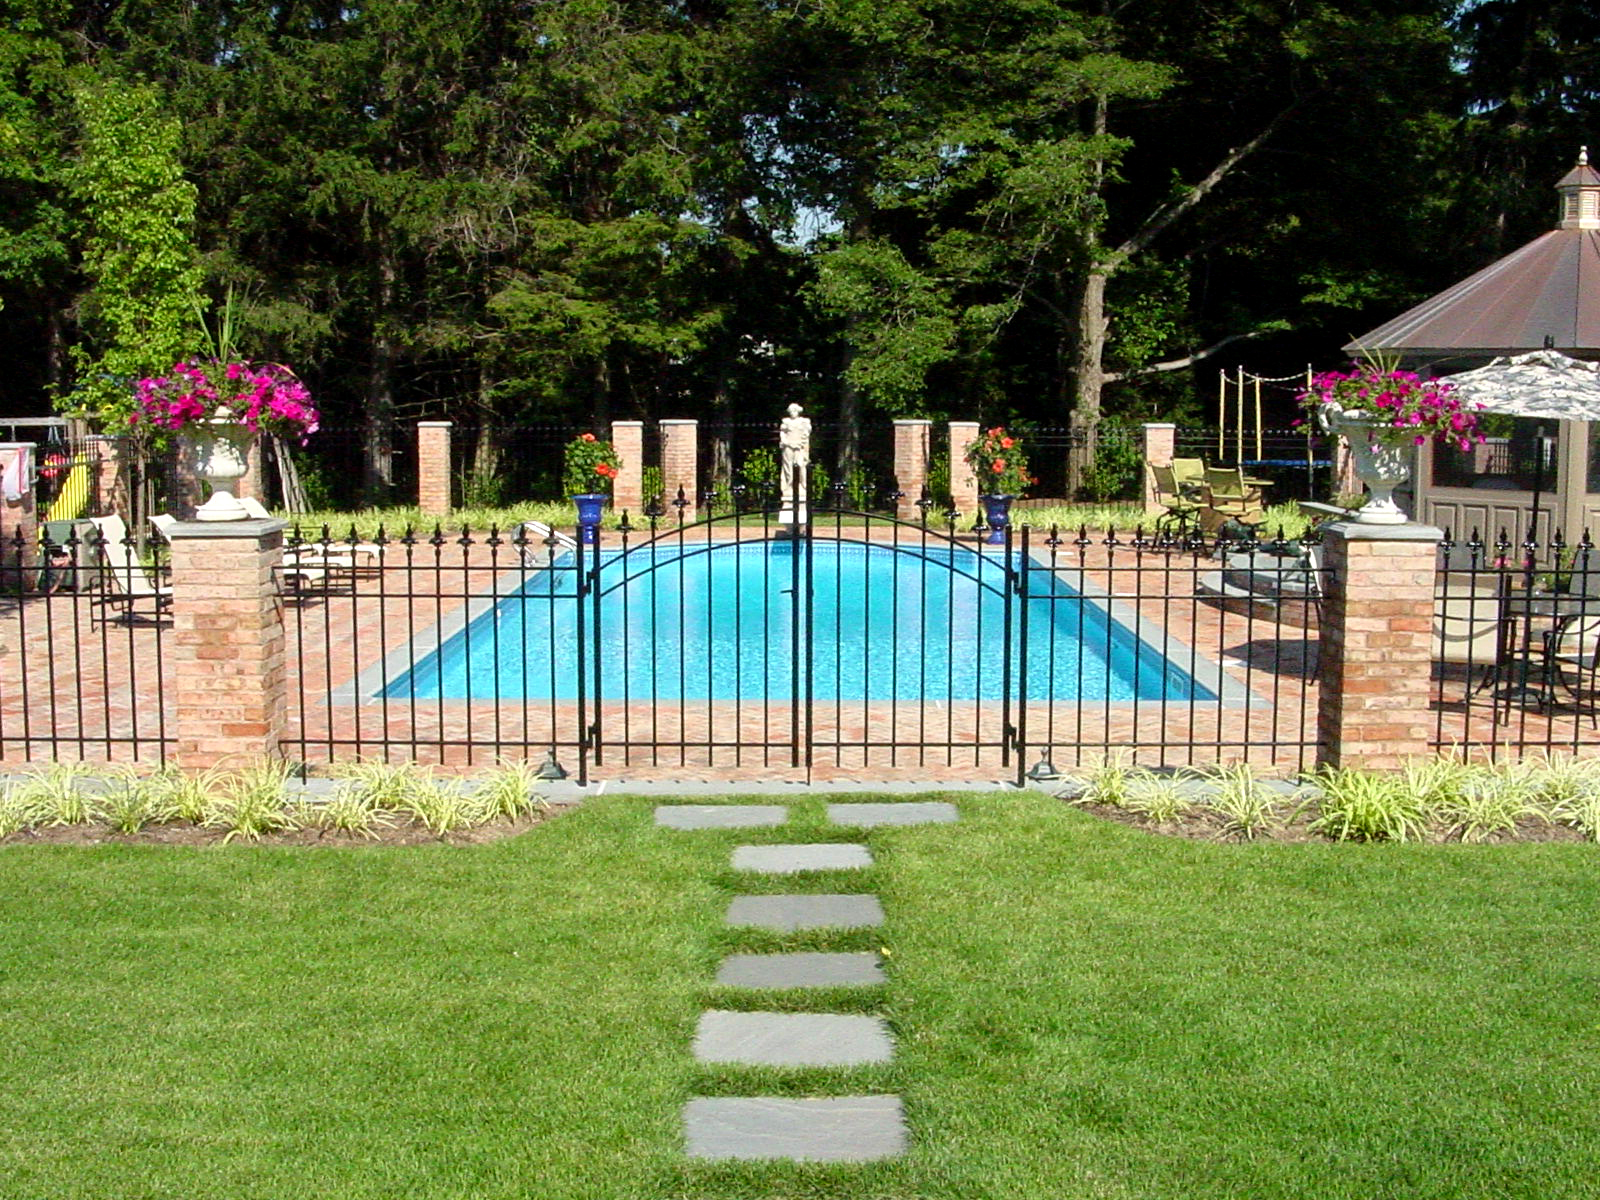 Top outdoor pool design company in Long Island, NY